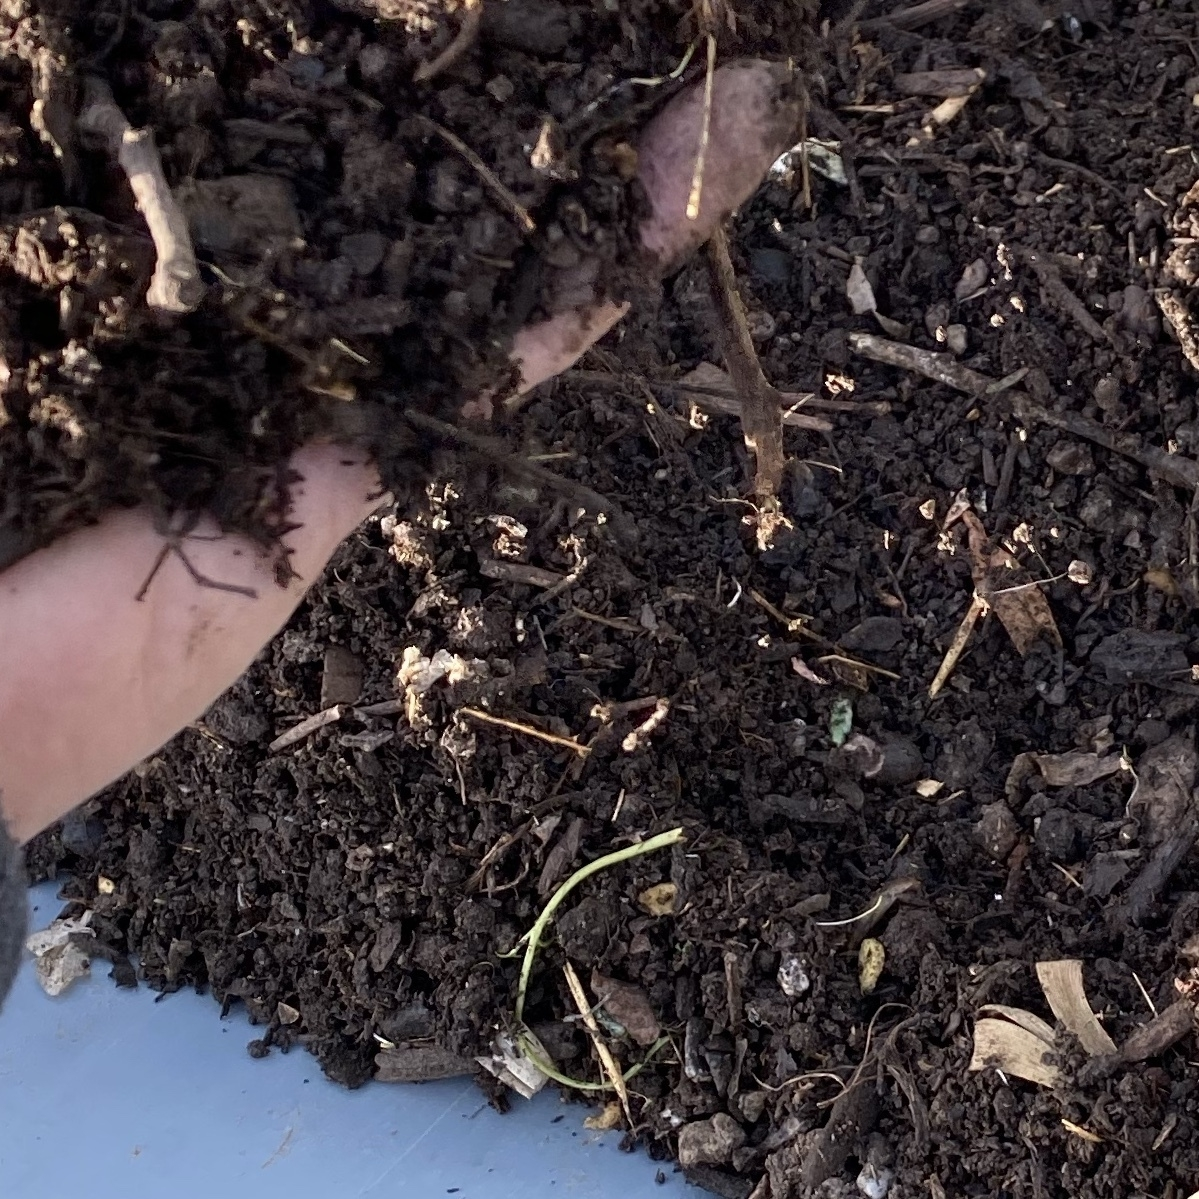 very dark homemade compost!